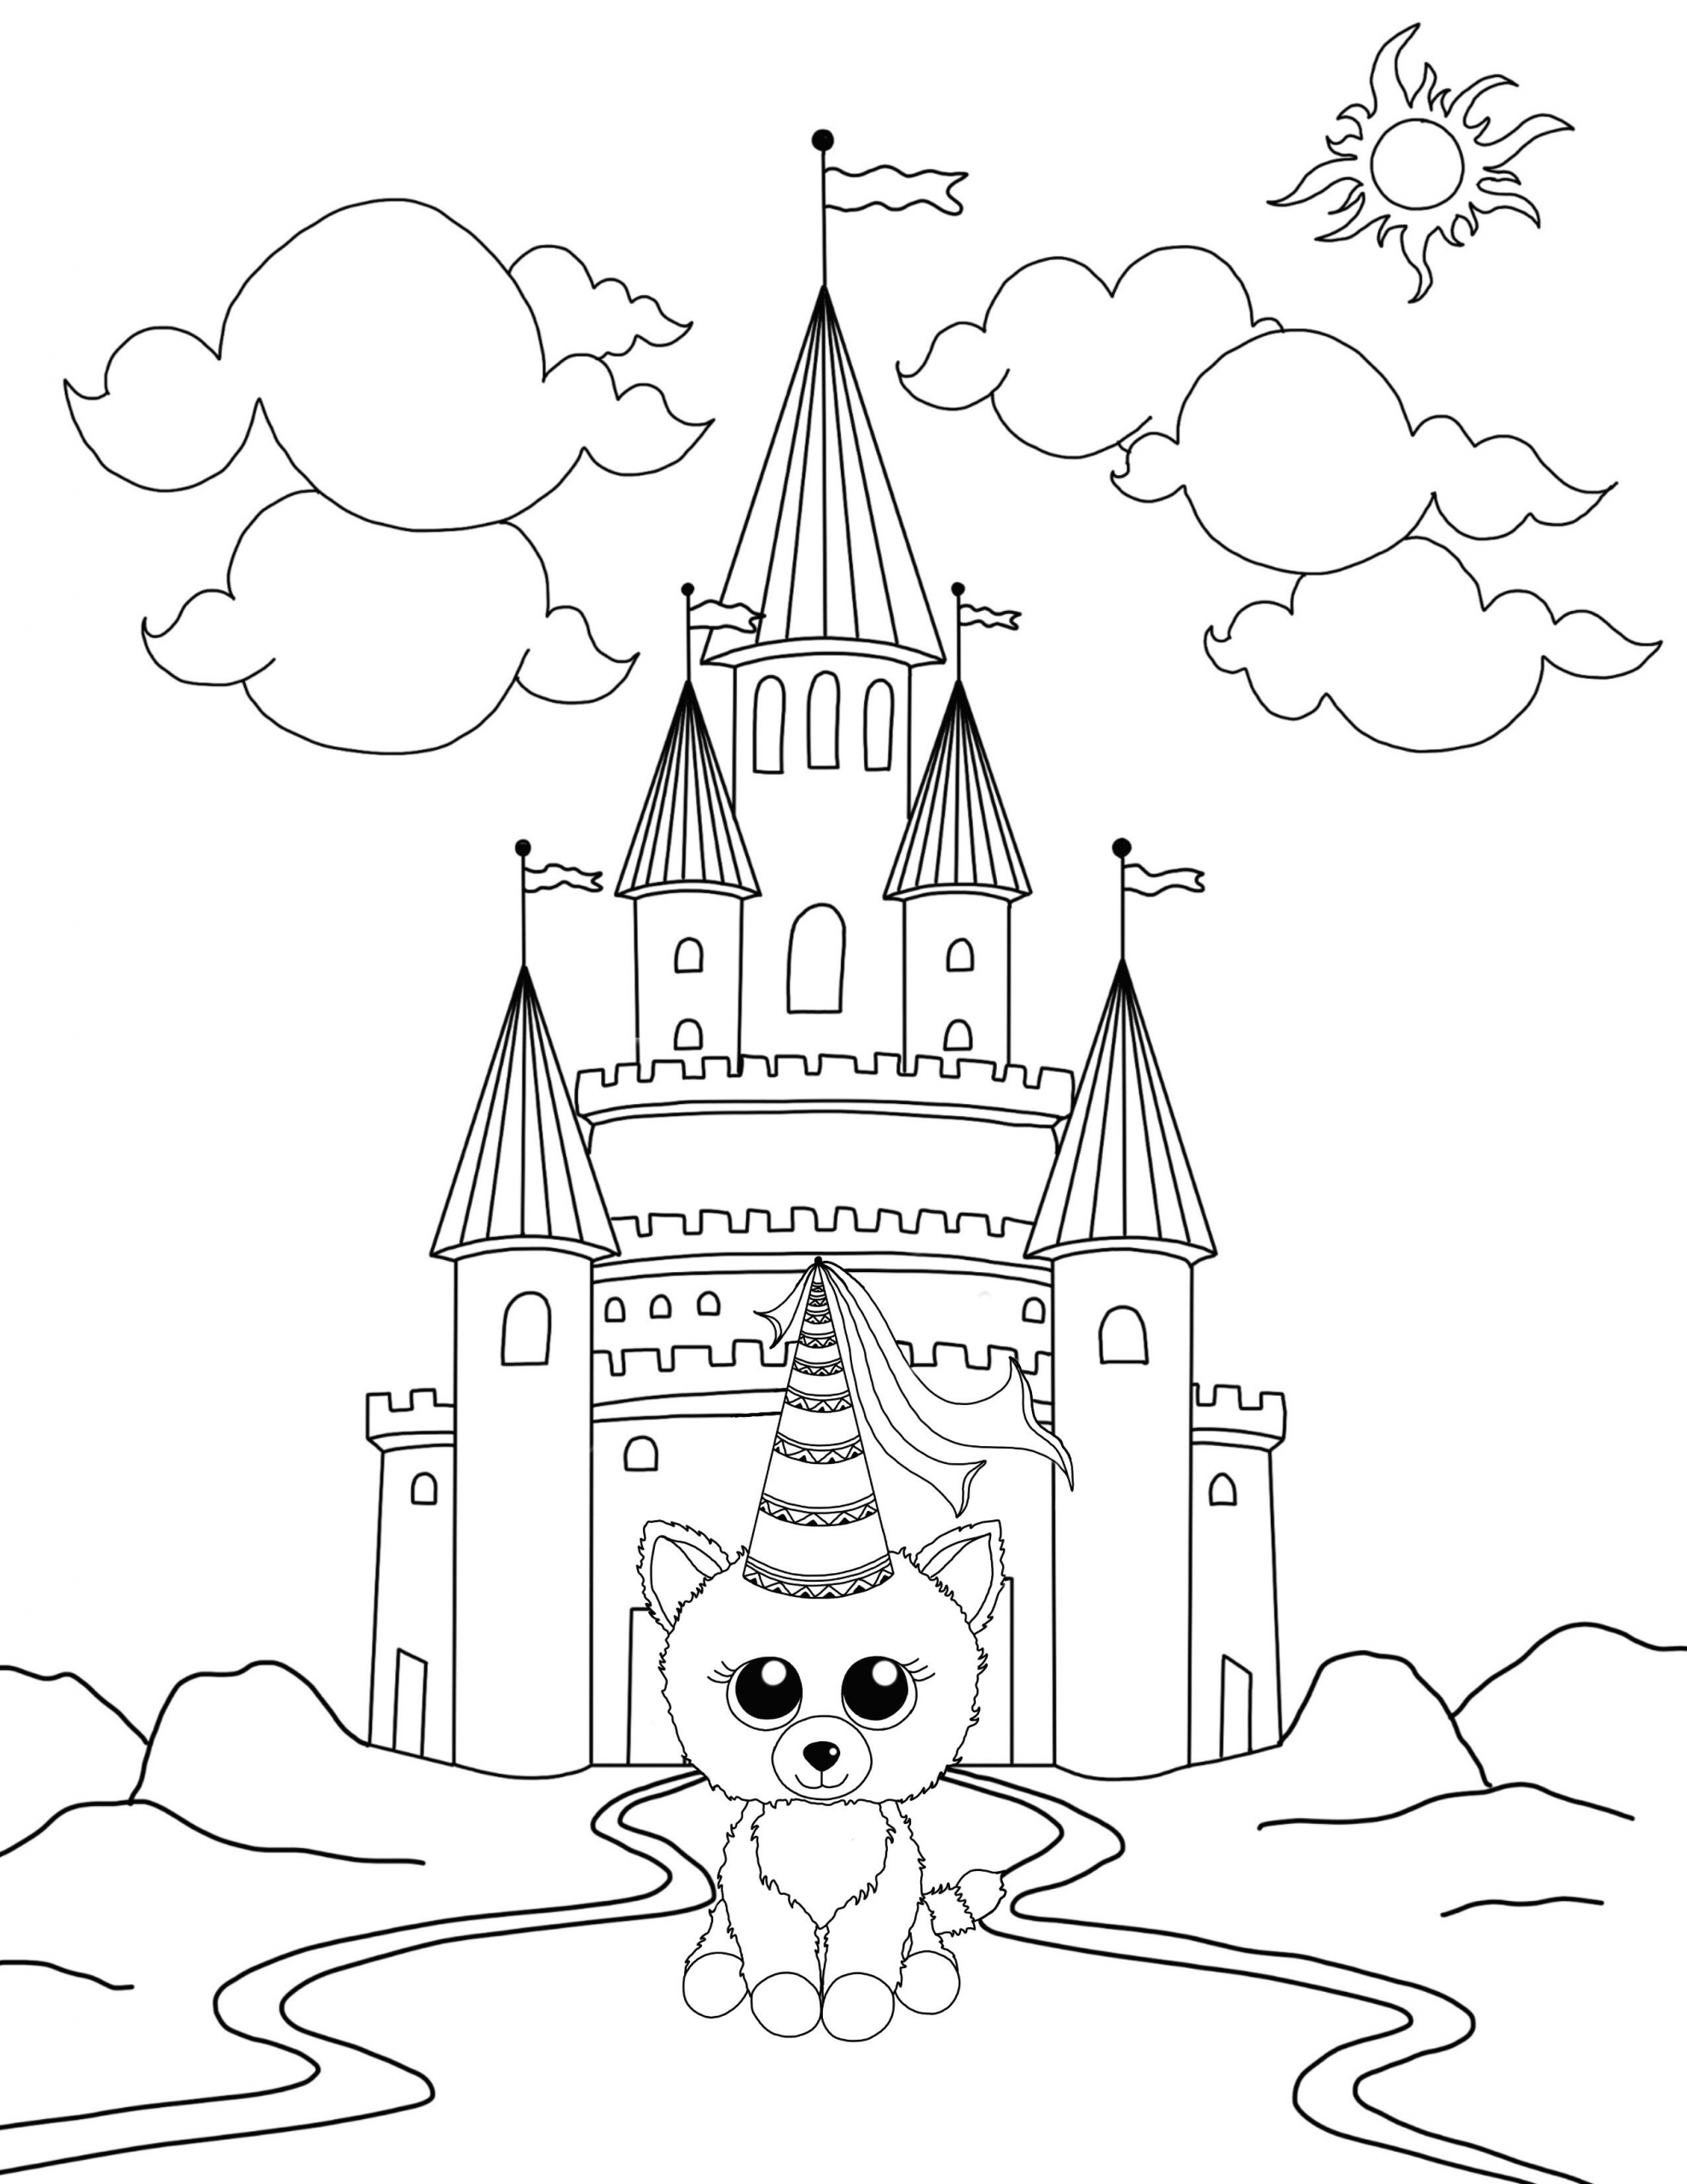 Princess Cat Coloring Page Youngandtae Com In 2020 Halloween Coloring Pages Cat Coloring Page Castle Coloring Page